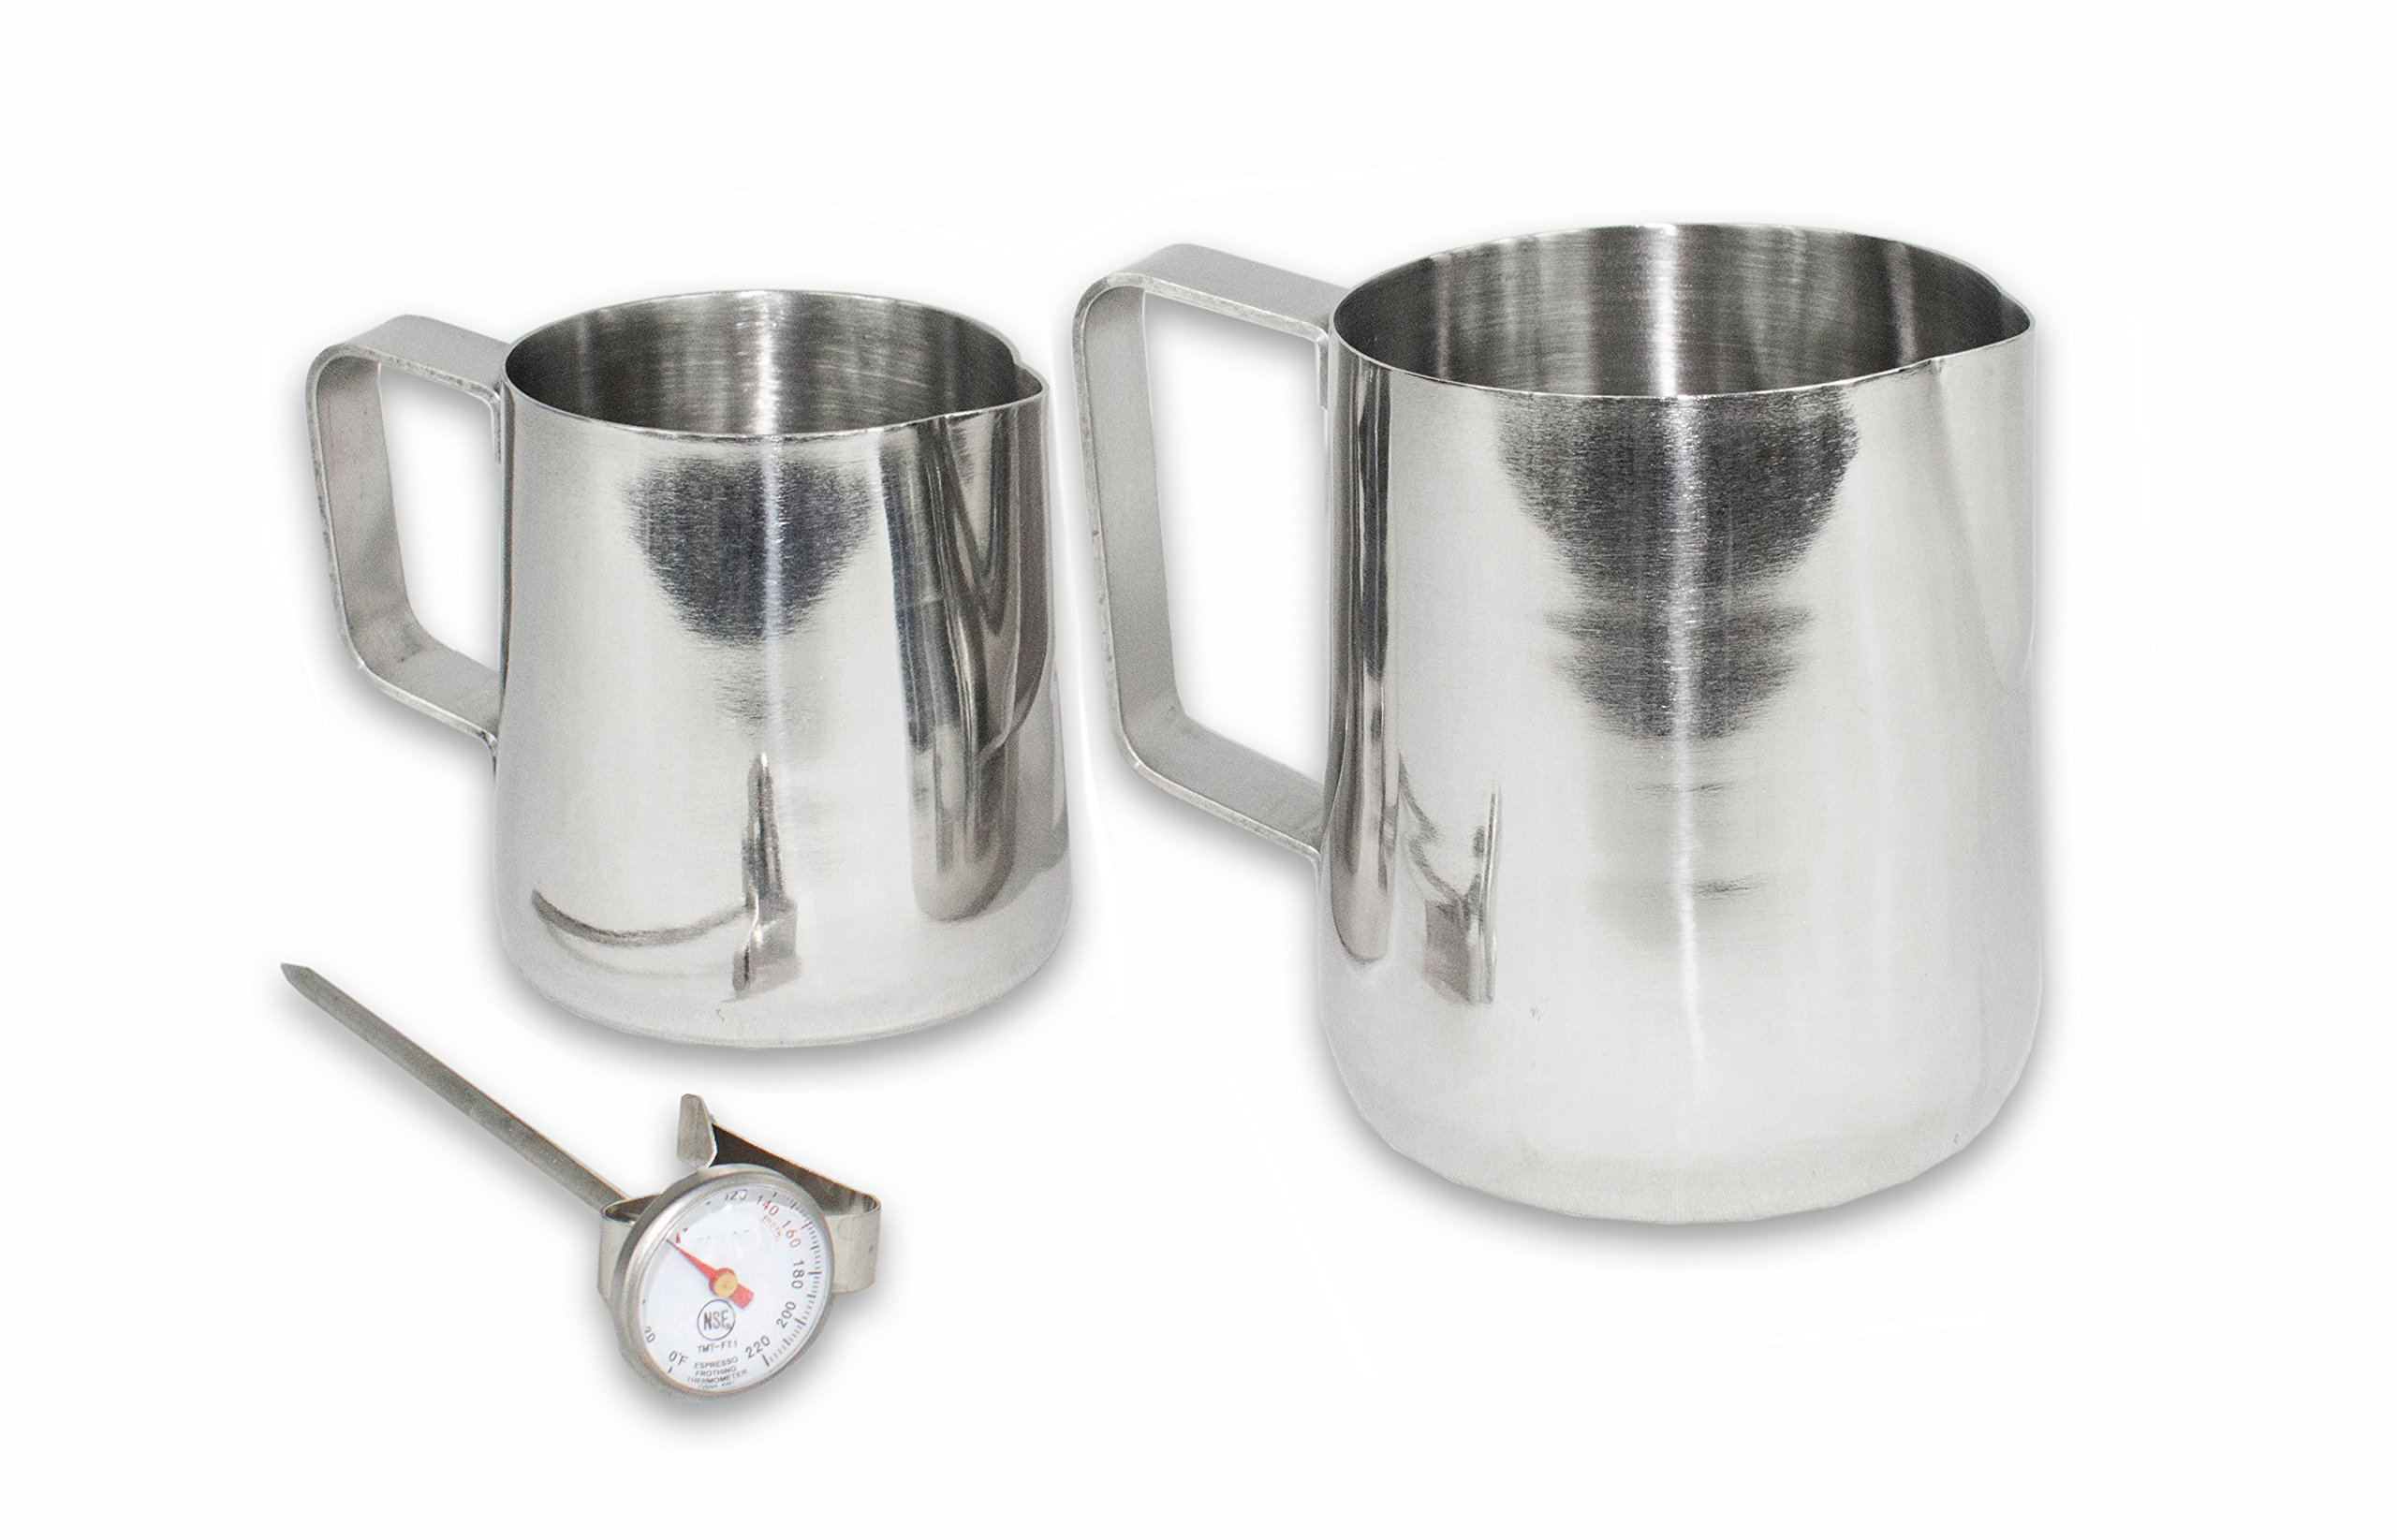 CucinaPrime Commercial Frothing Pitcher Set with Thermometer, Stainless Steel, 14 Ounce and 20 Ounce Pitchers